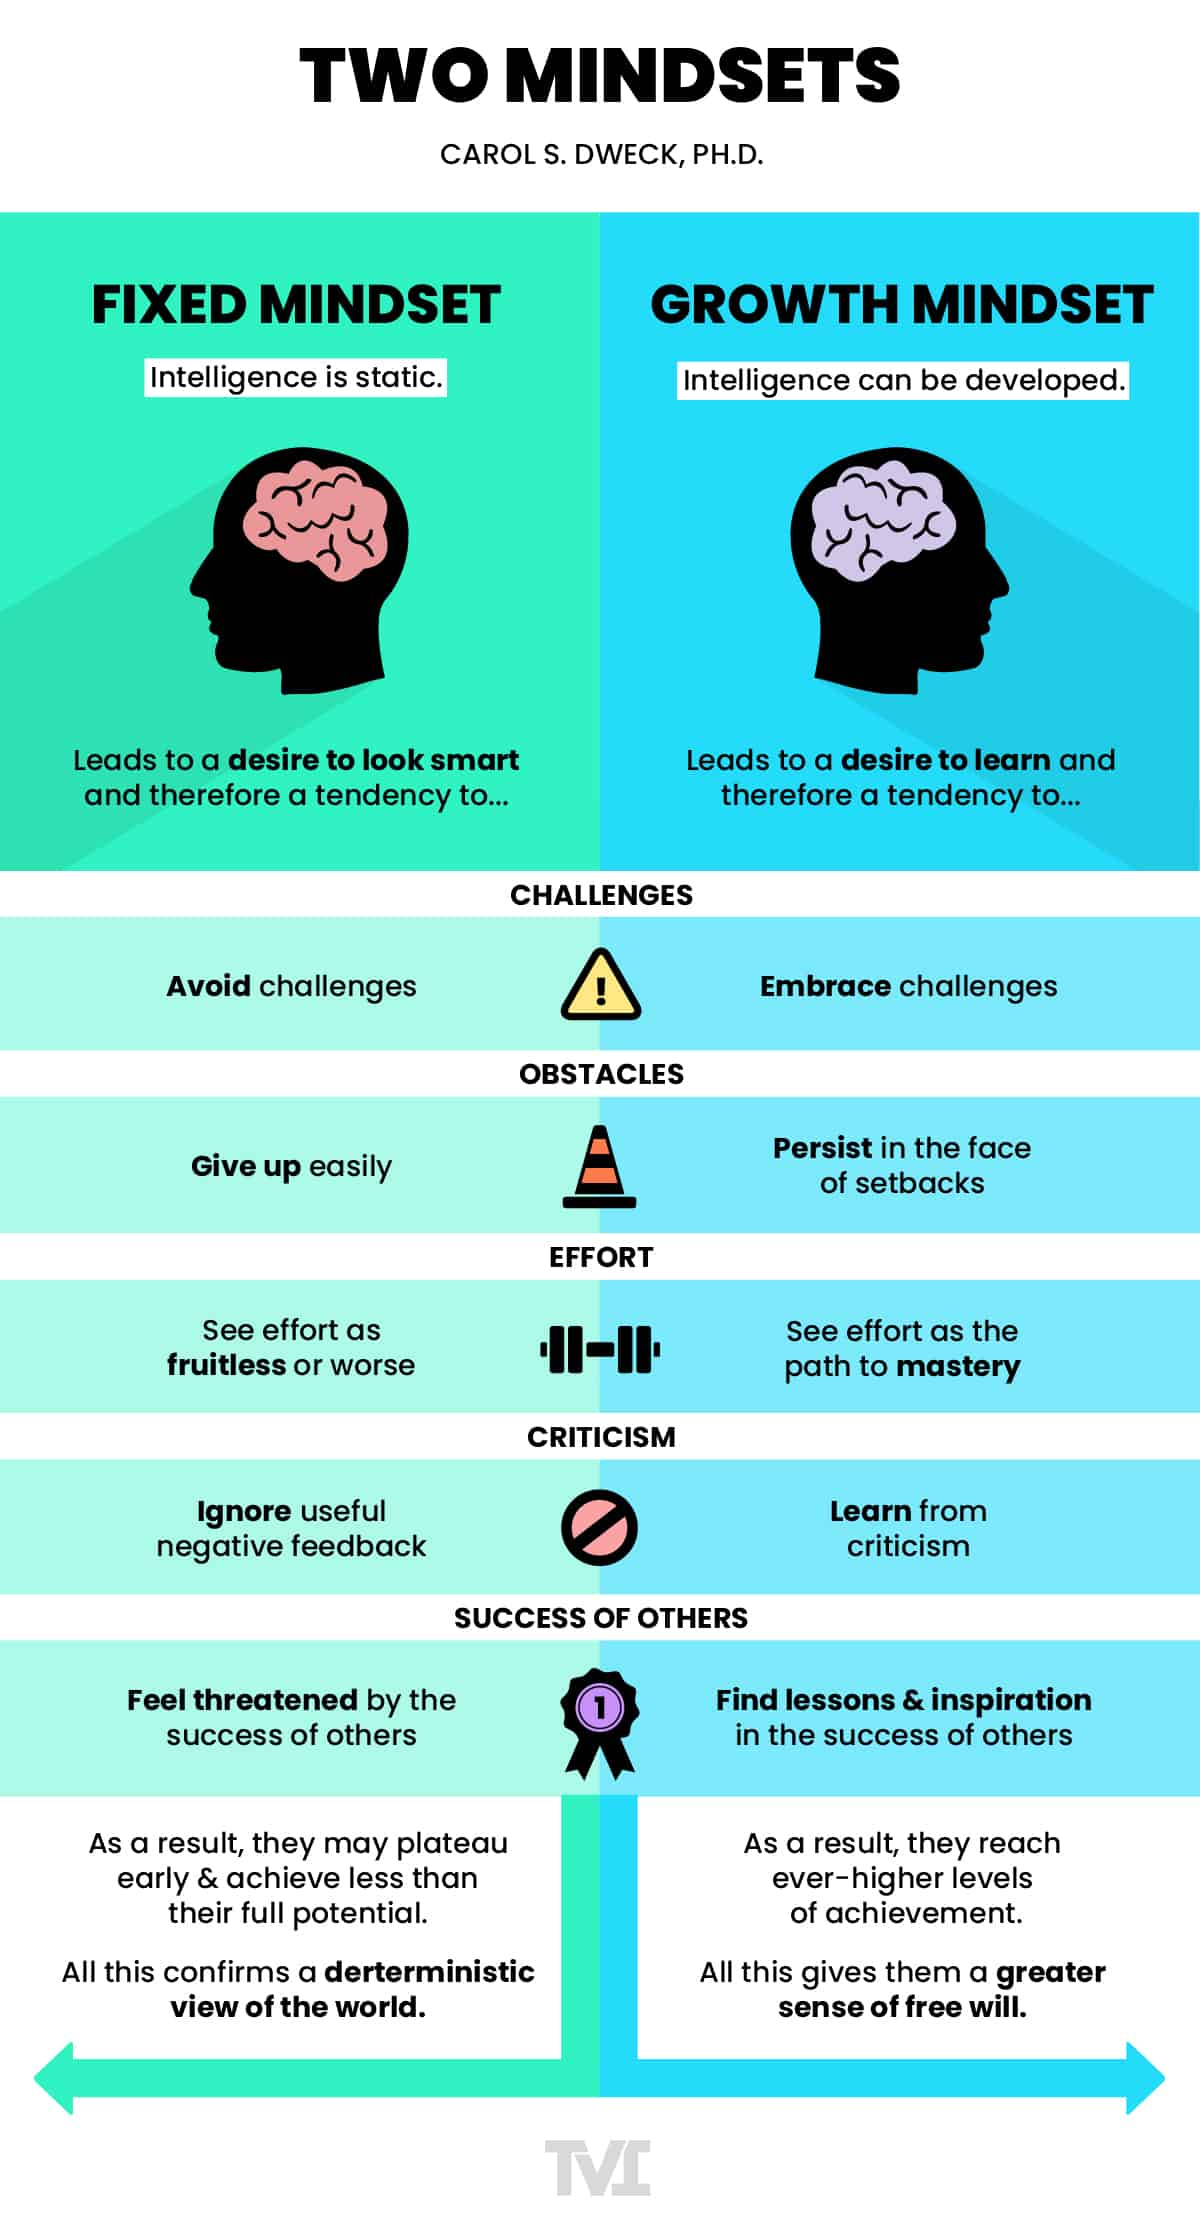 infographic of a fixed mindset vs. a growth mindset